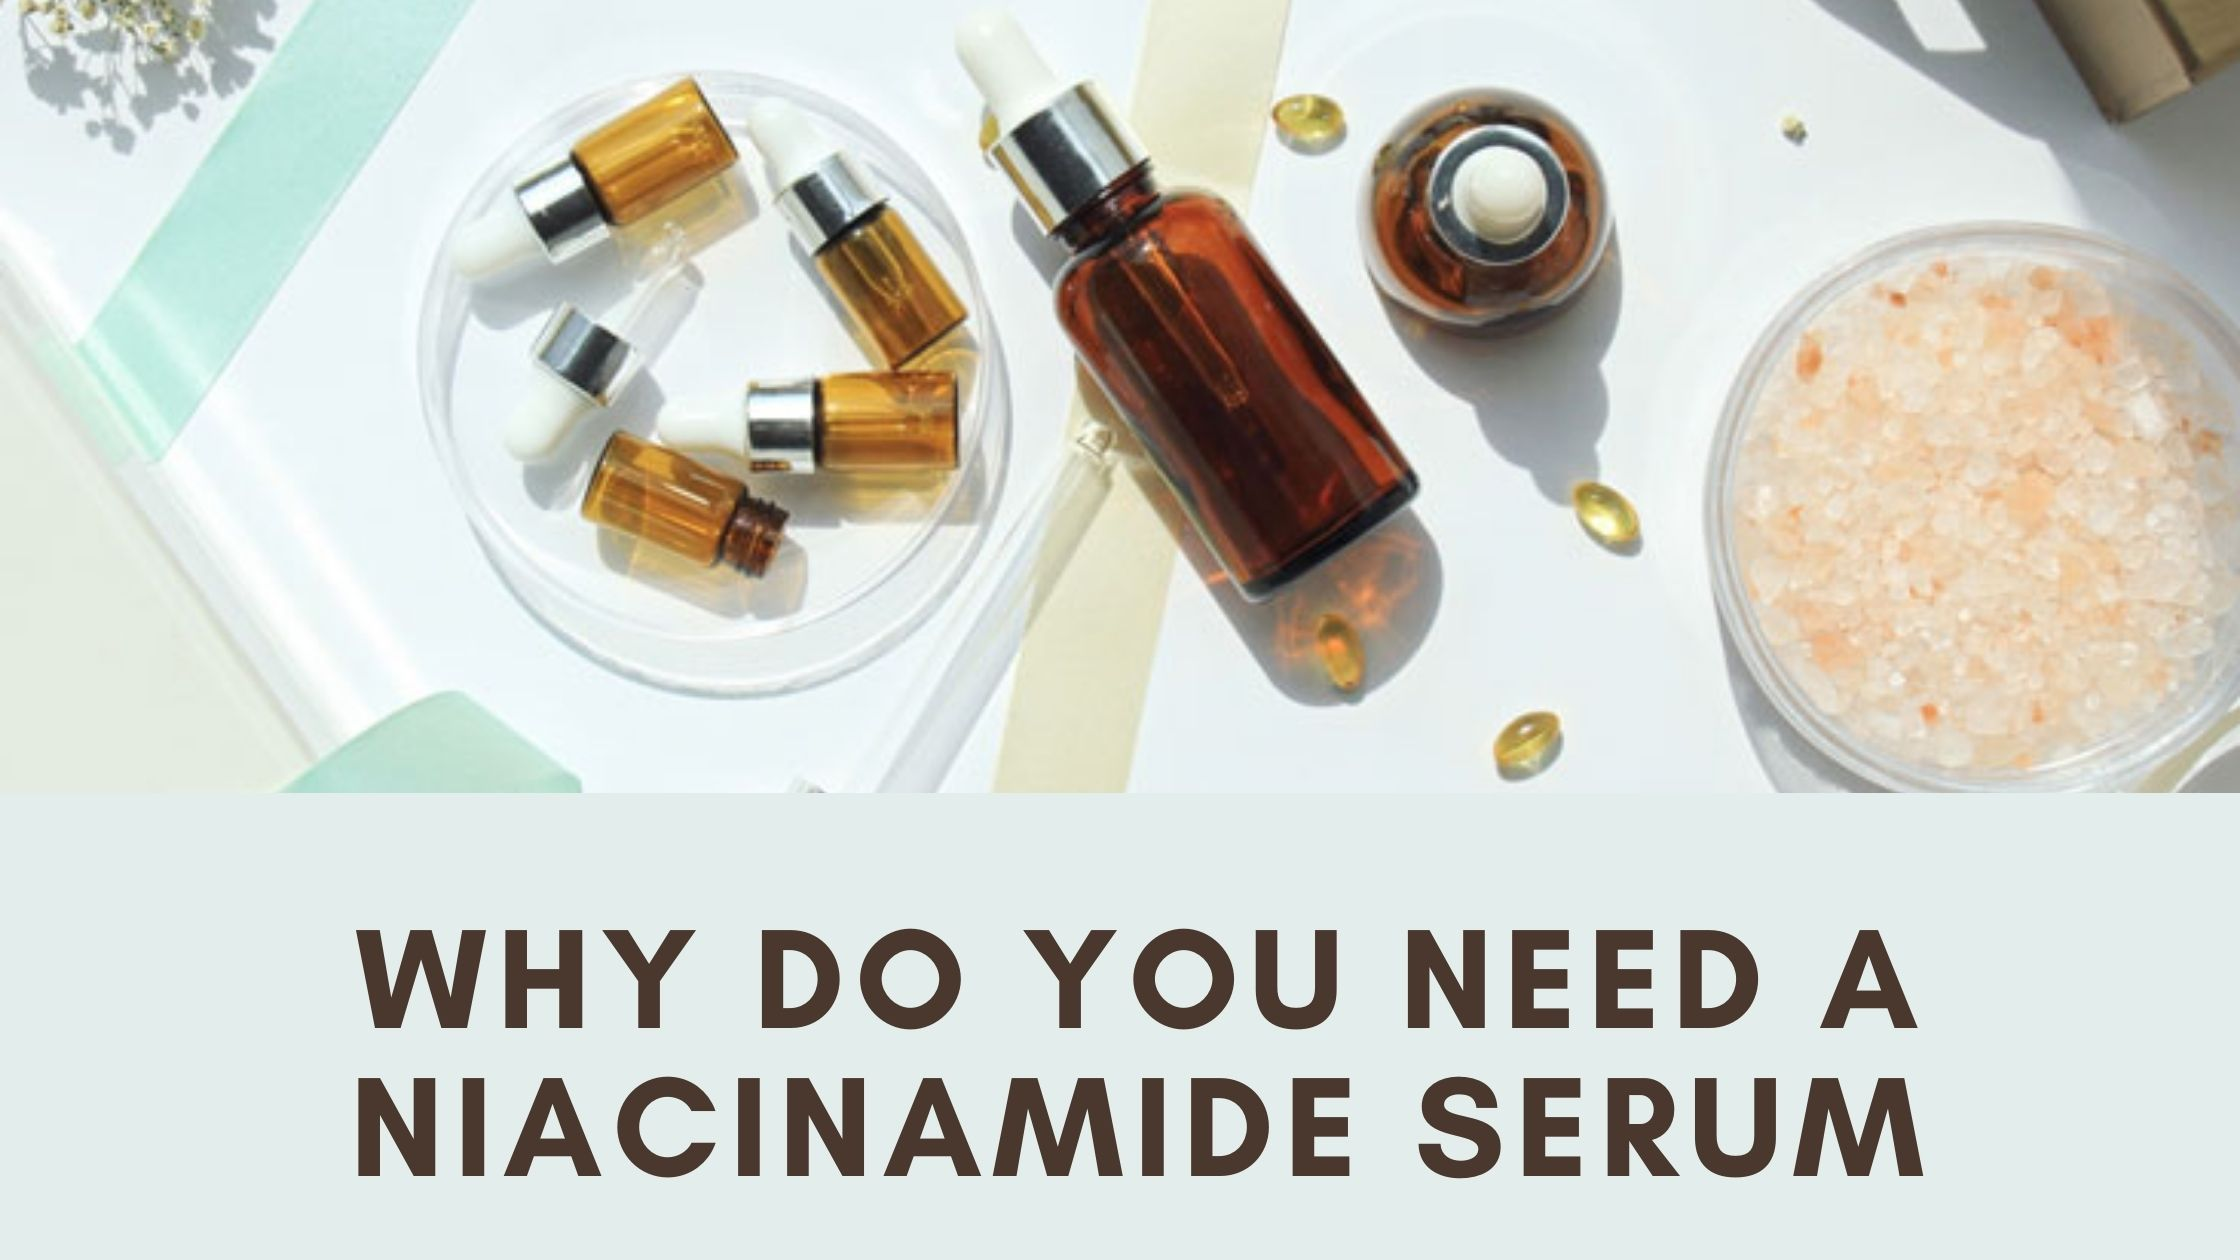 What is Niacinamide (Vitamin B3)? How Does a Niacinamide Serum work?